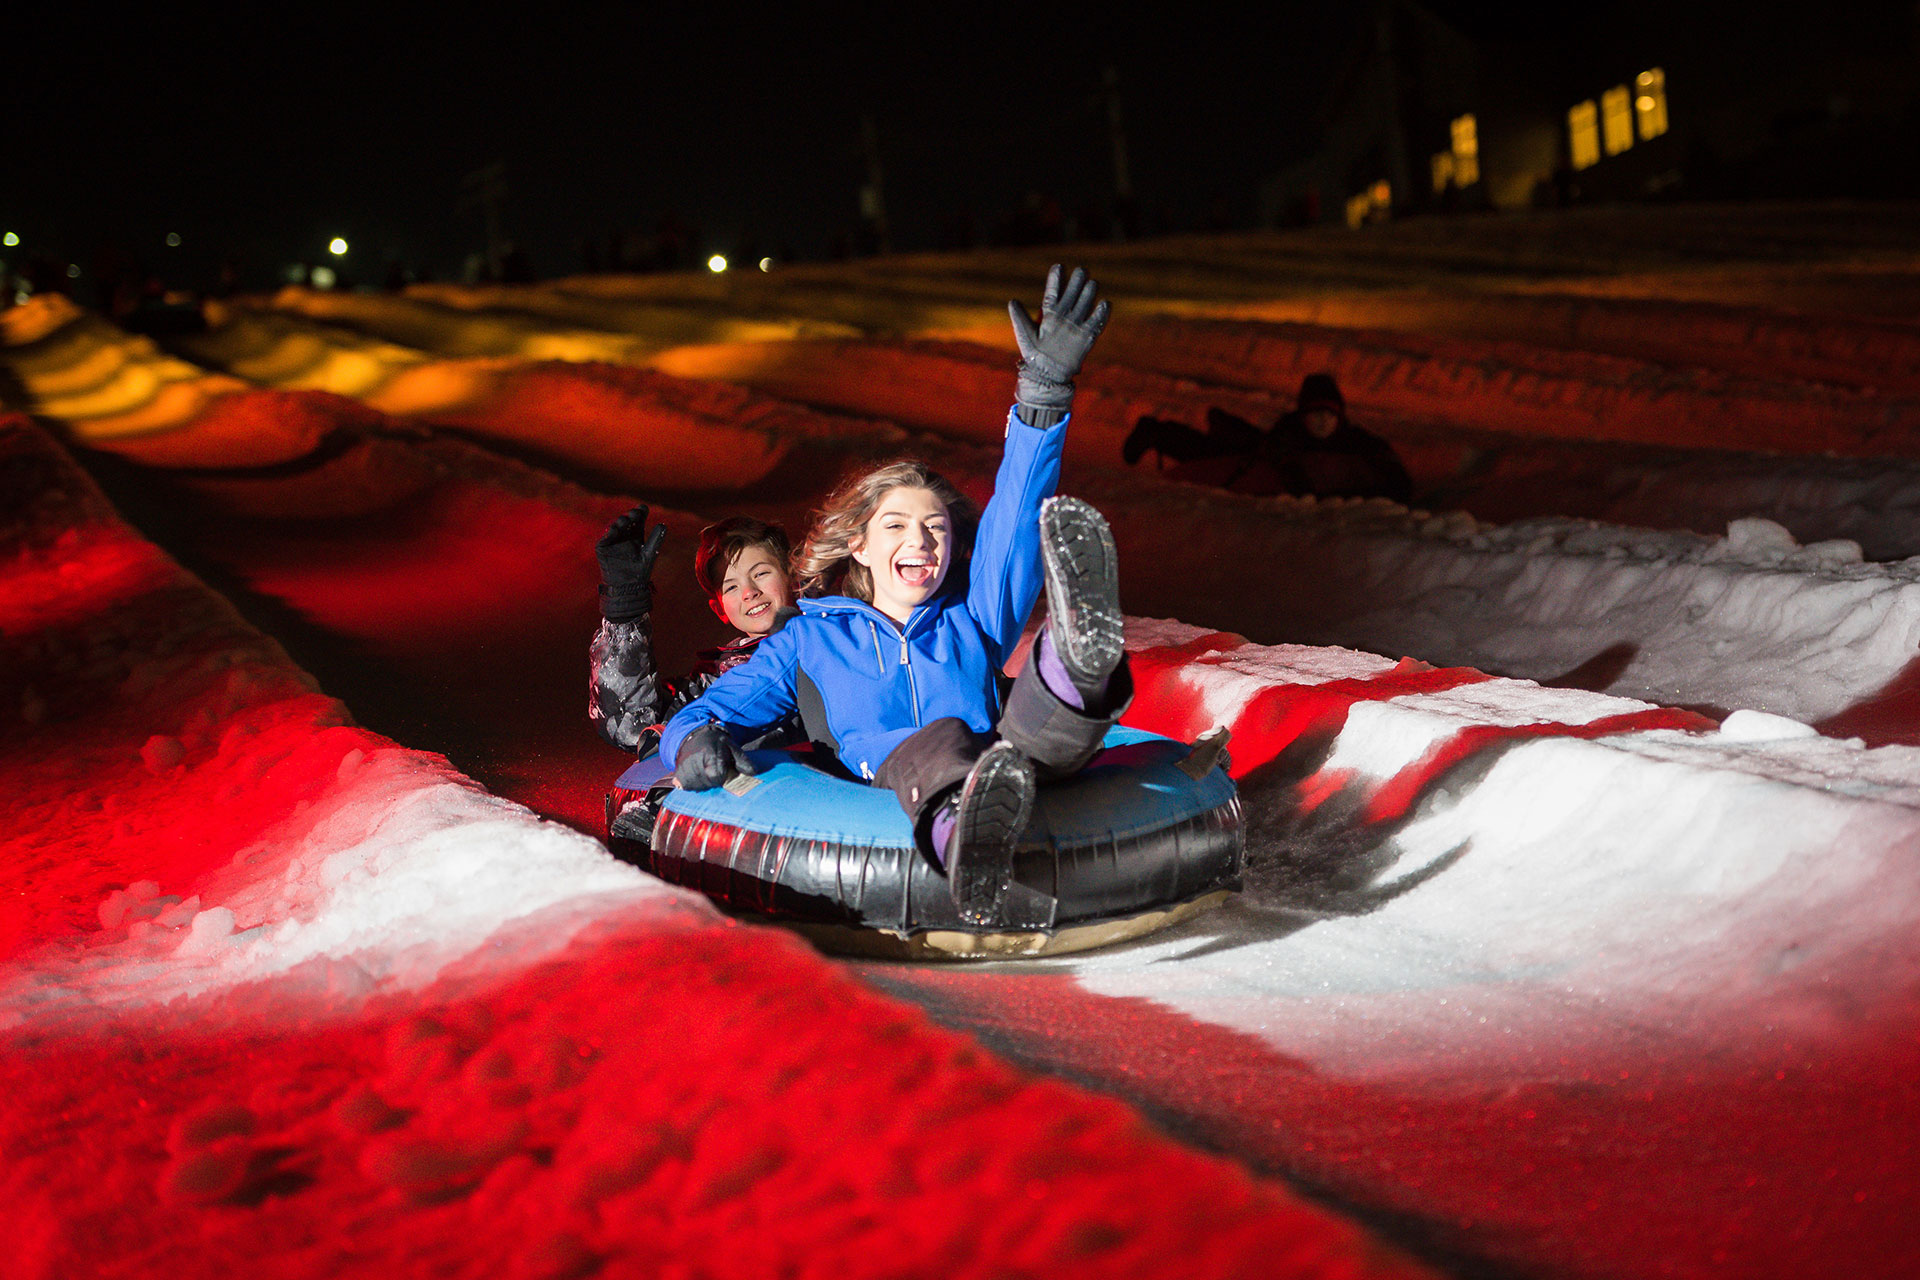 Snow Tubing at Camelback Mountain Resort